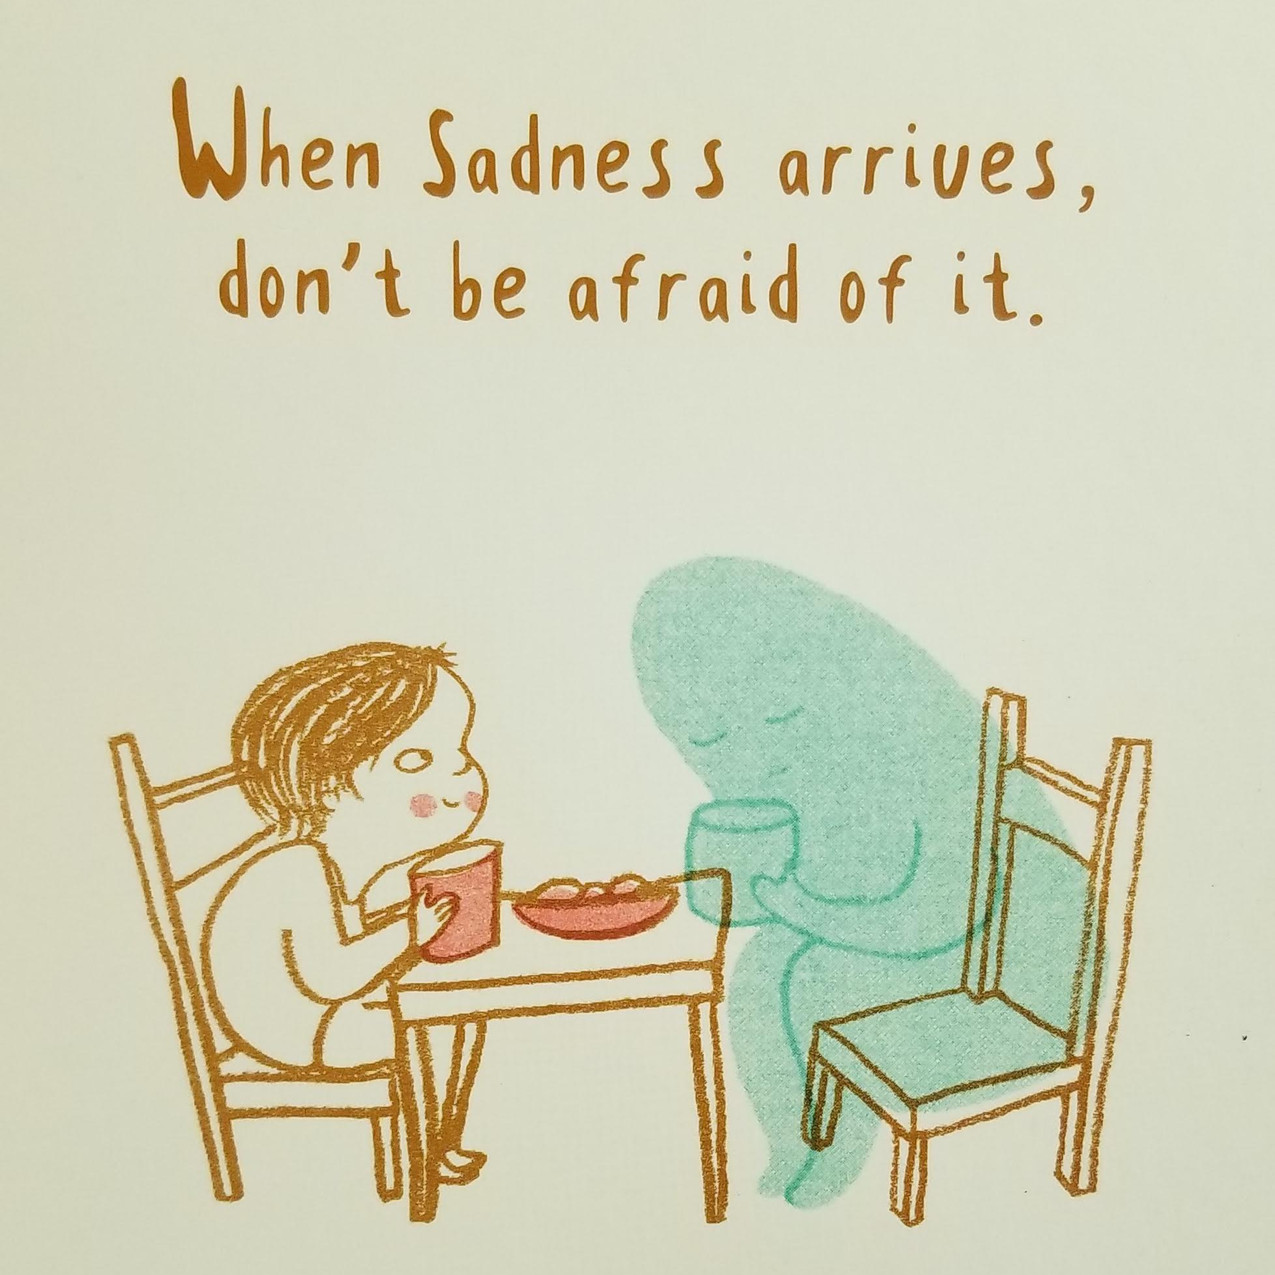 Have a talk when sadness comes.